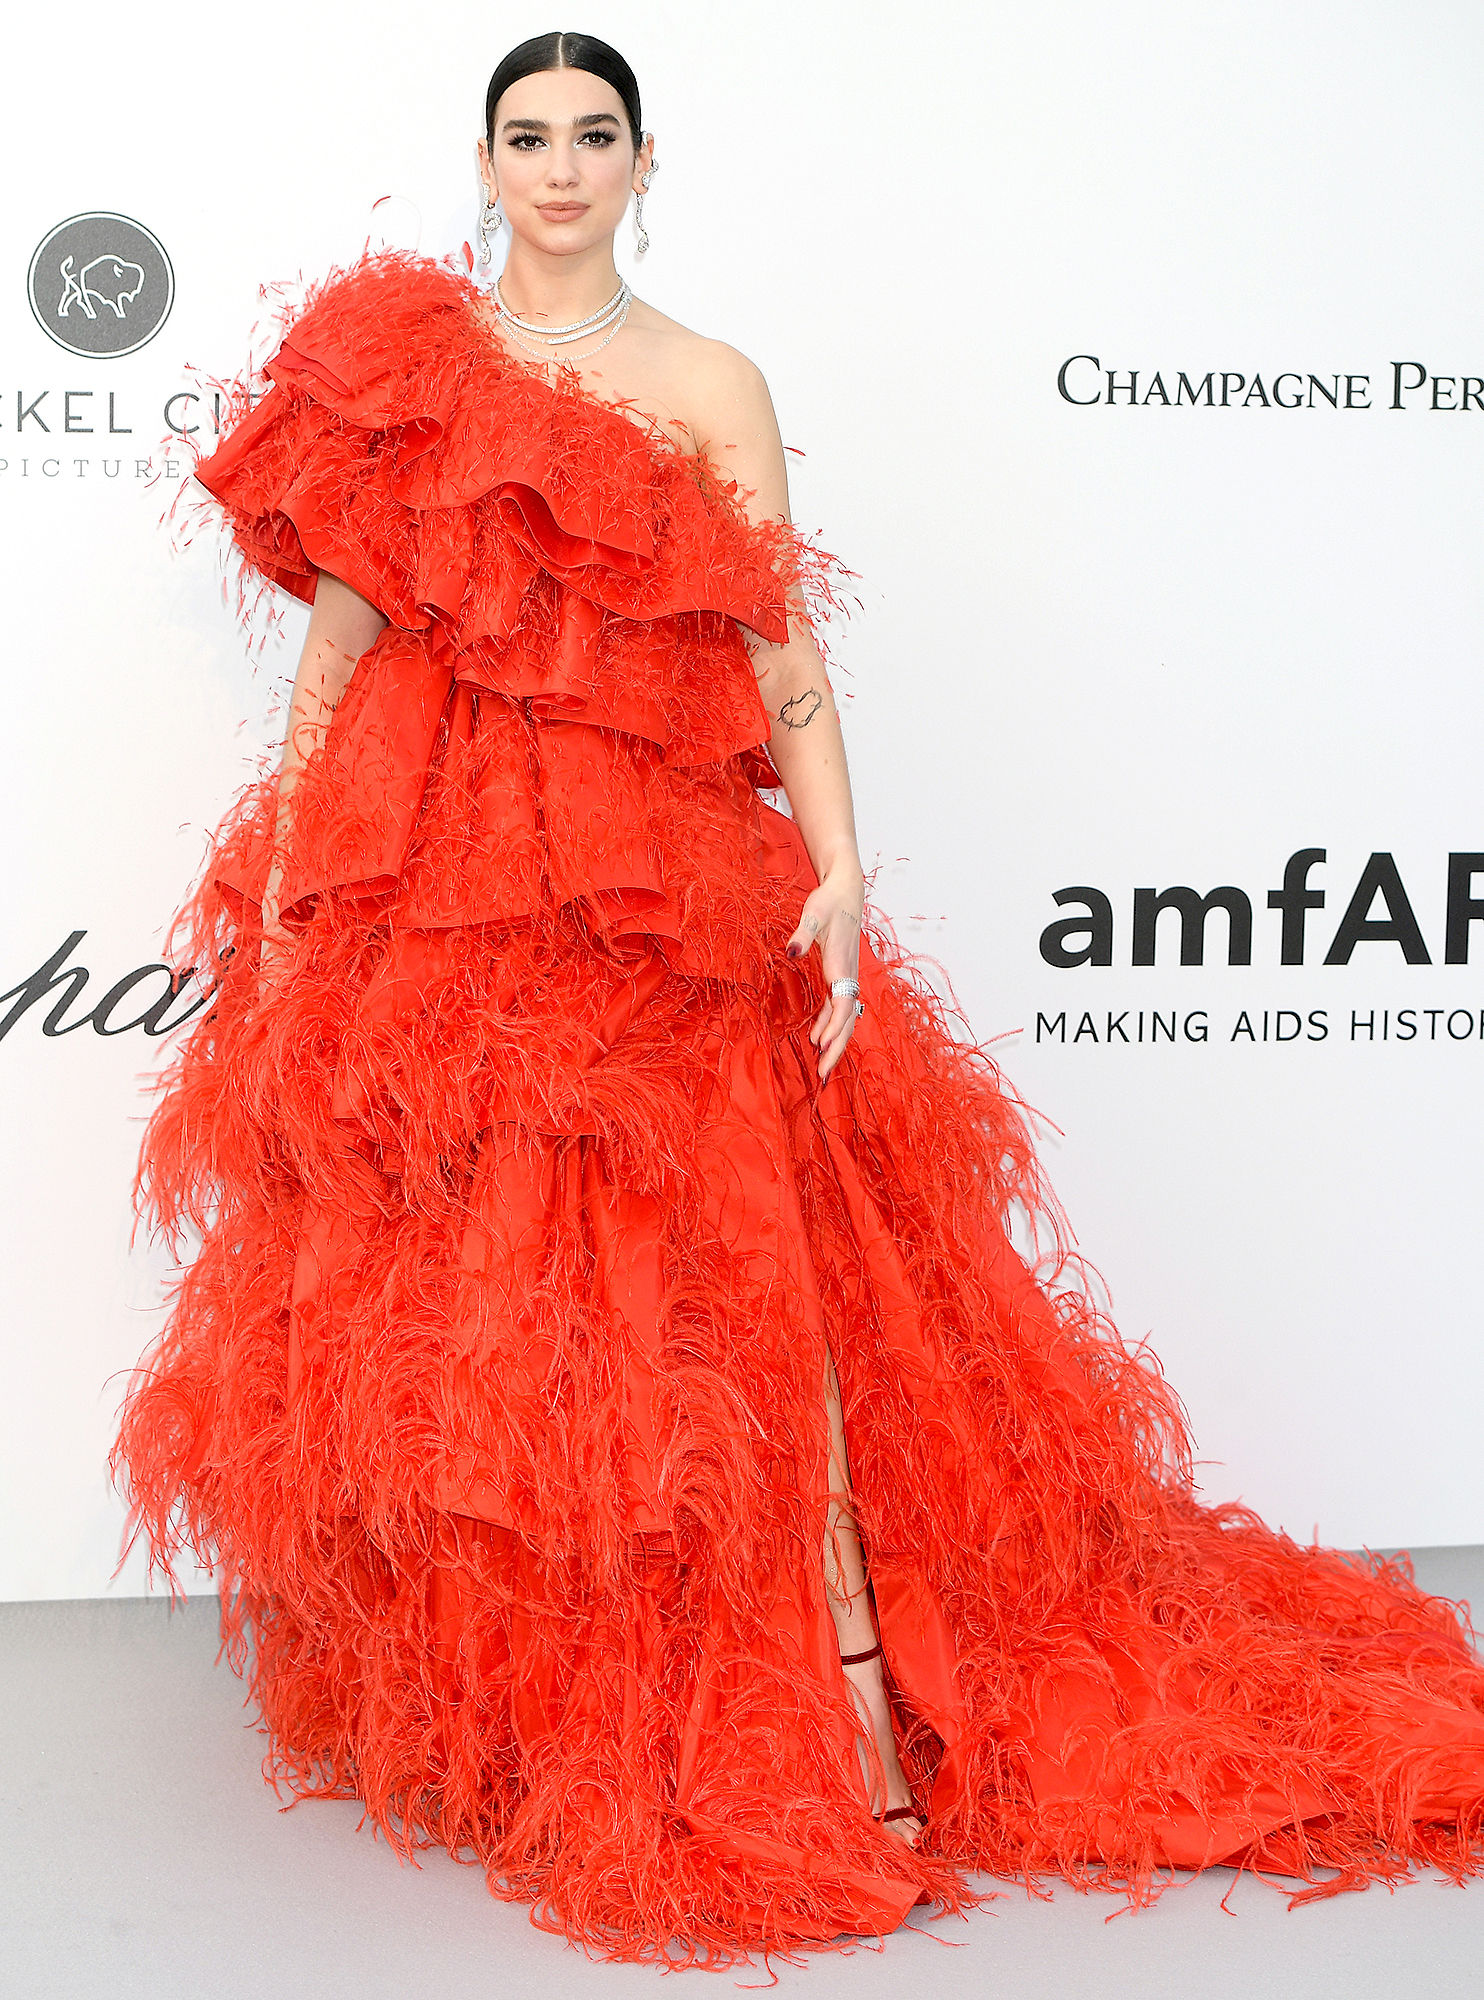 Dua-Lipa - We're getting scarlet fever from the songstress' voluminous Valentino gown at the amfAR Cannes Gala on Thursday, May 23.